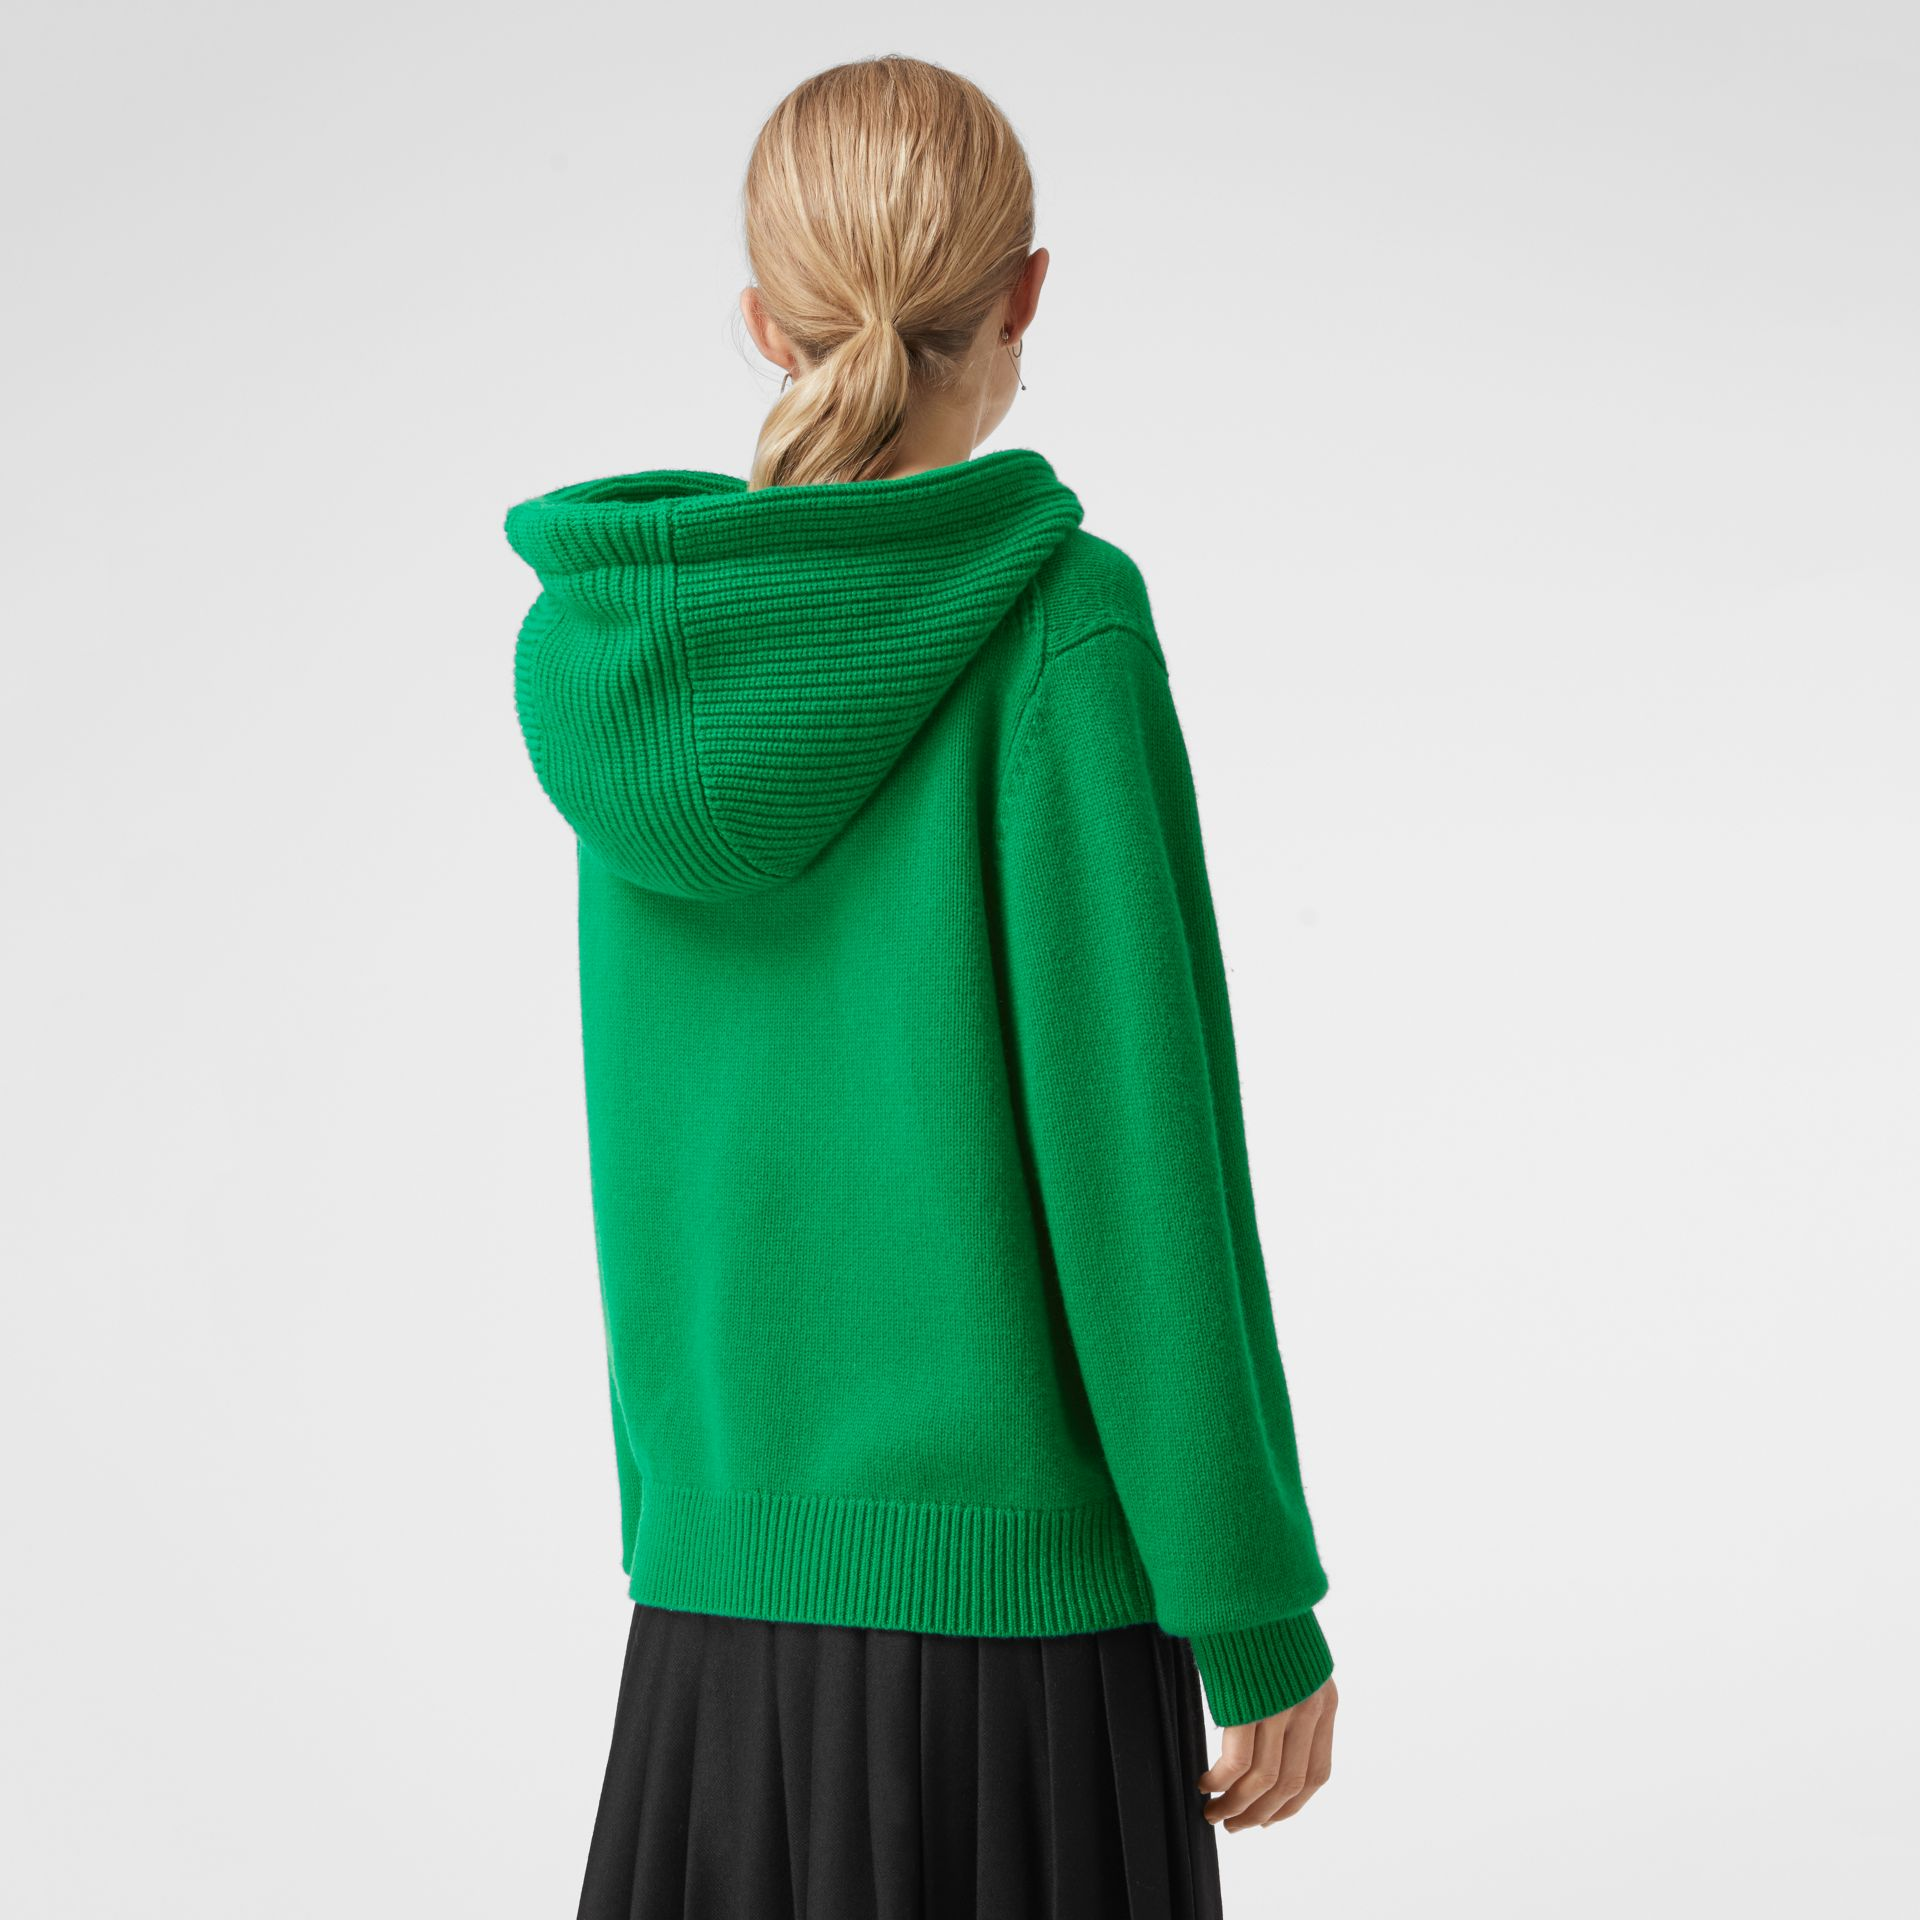 Embroidered Archive Logo Cashmere Hooded Top in Vibrant Green - Women | Burberry - gallery image 2